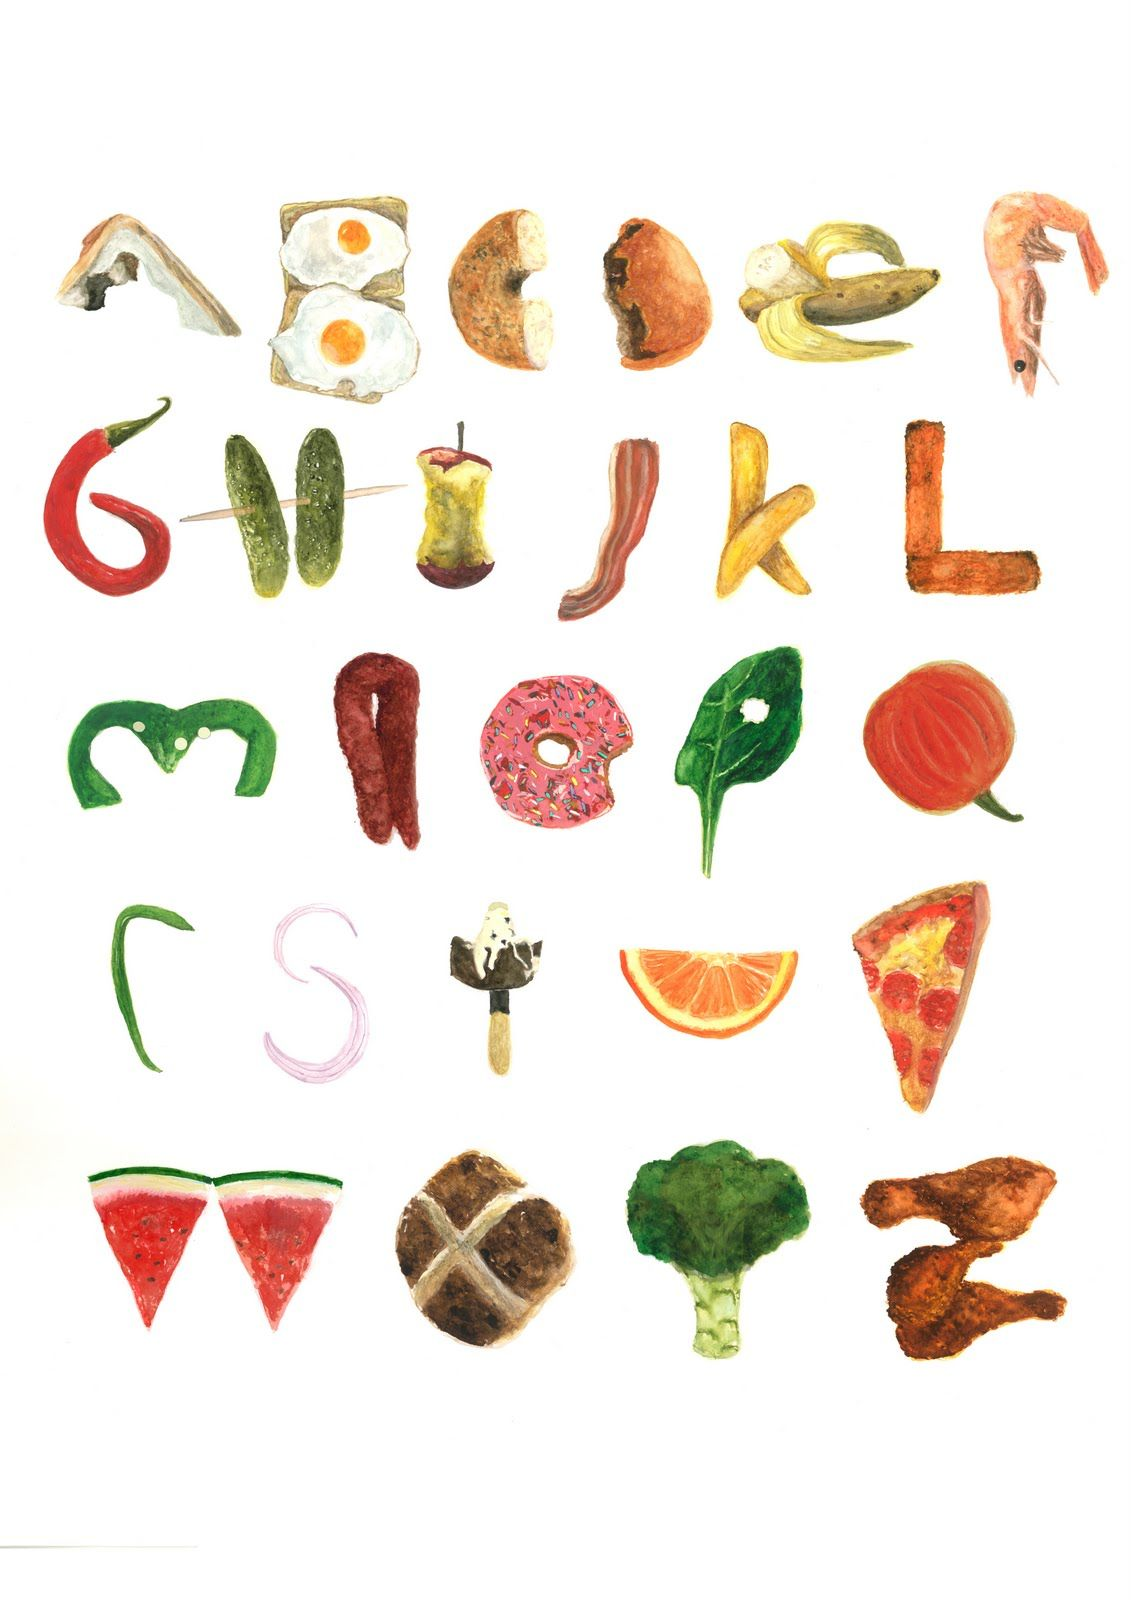 Lucy Wragg Illustration New Typography Work